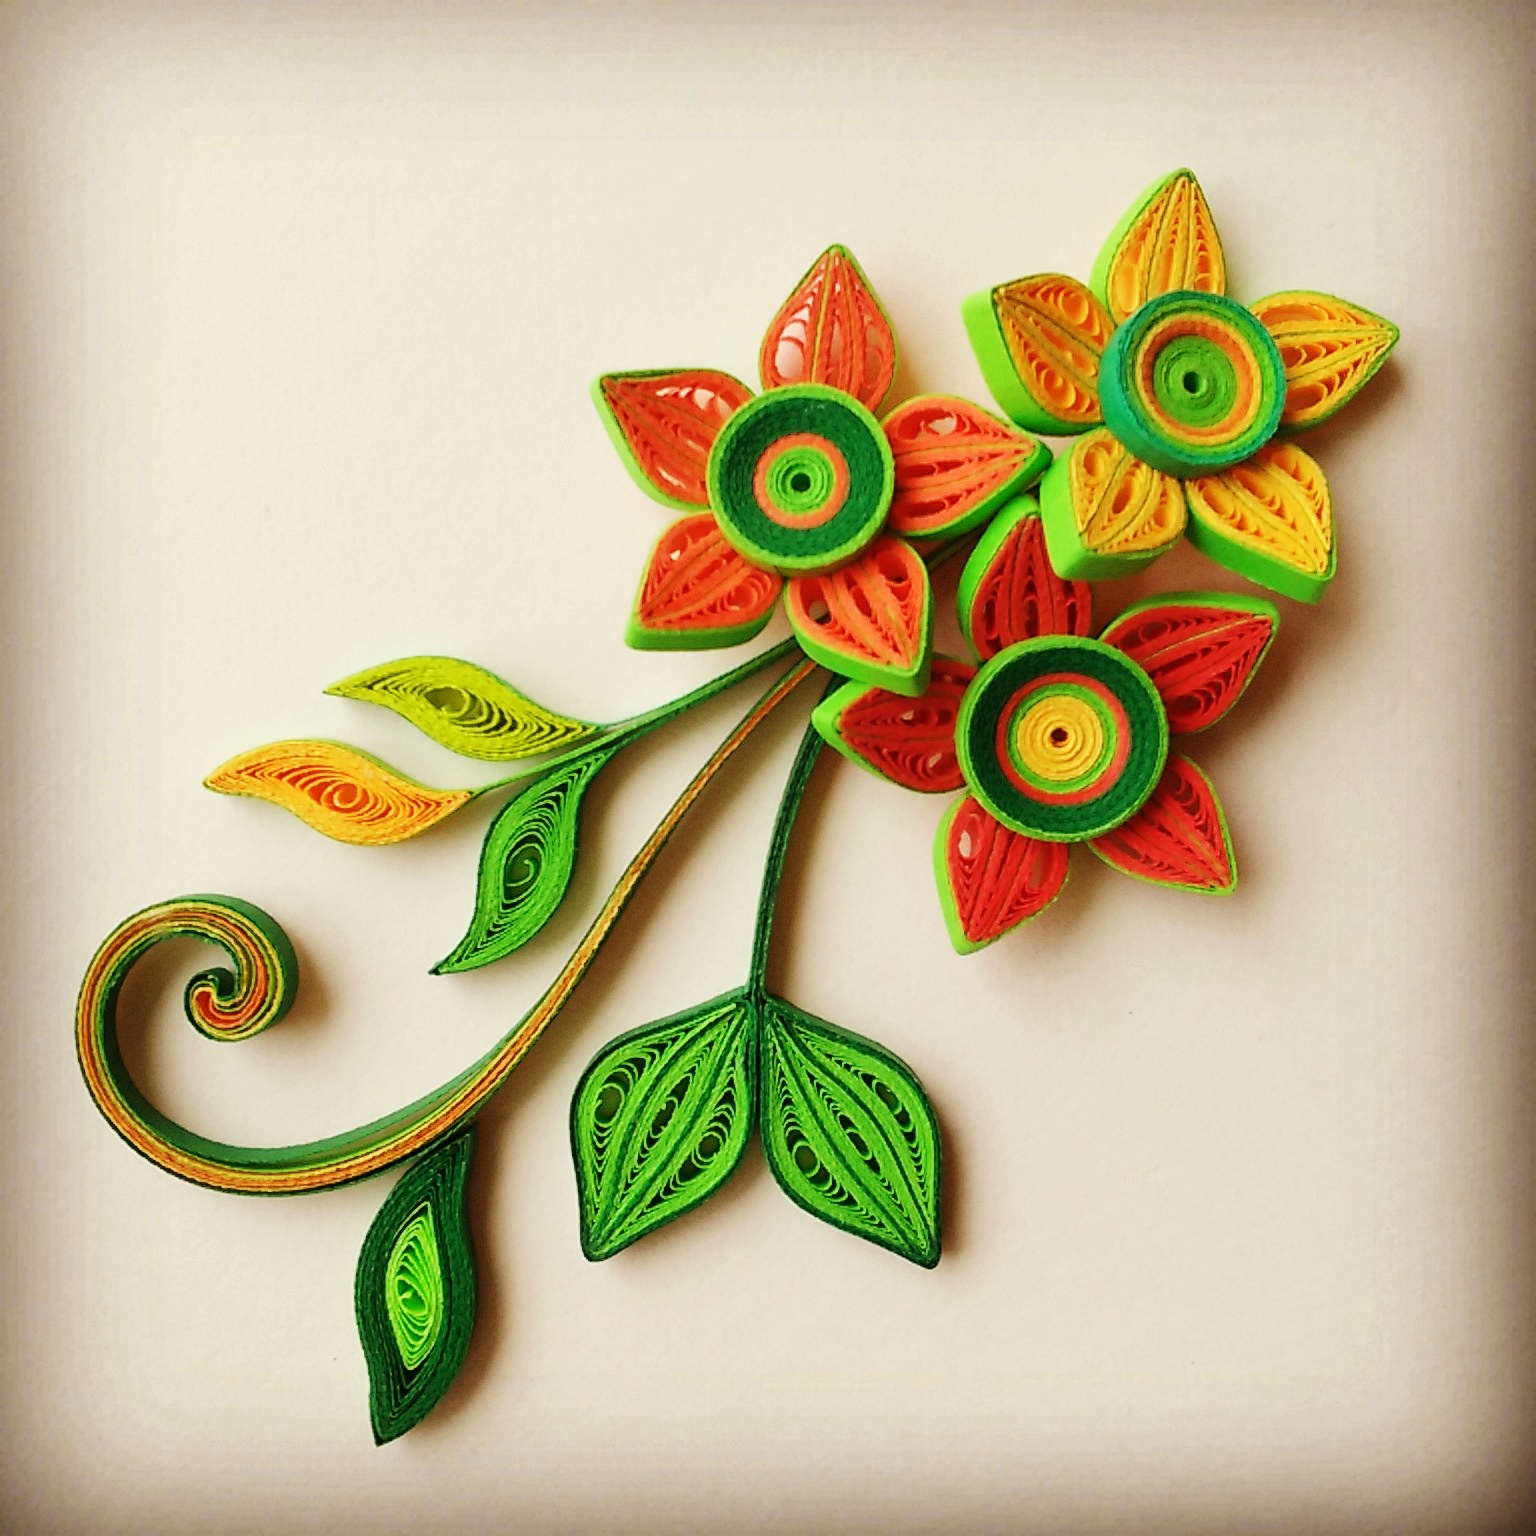 Picture of Gorgeous 3D Quilled Flowers and Leaves From Scratch!